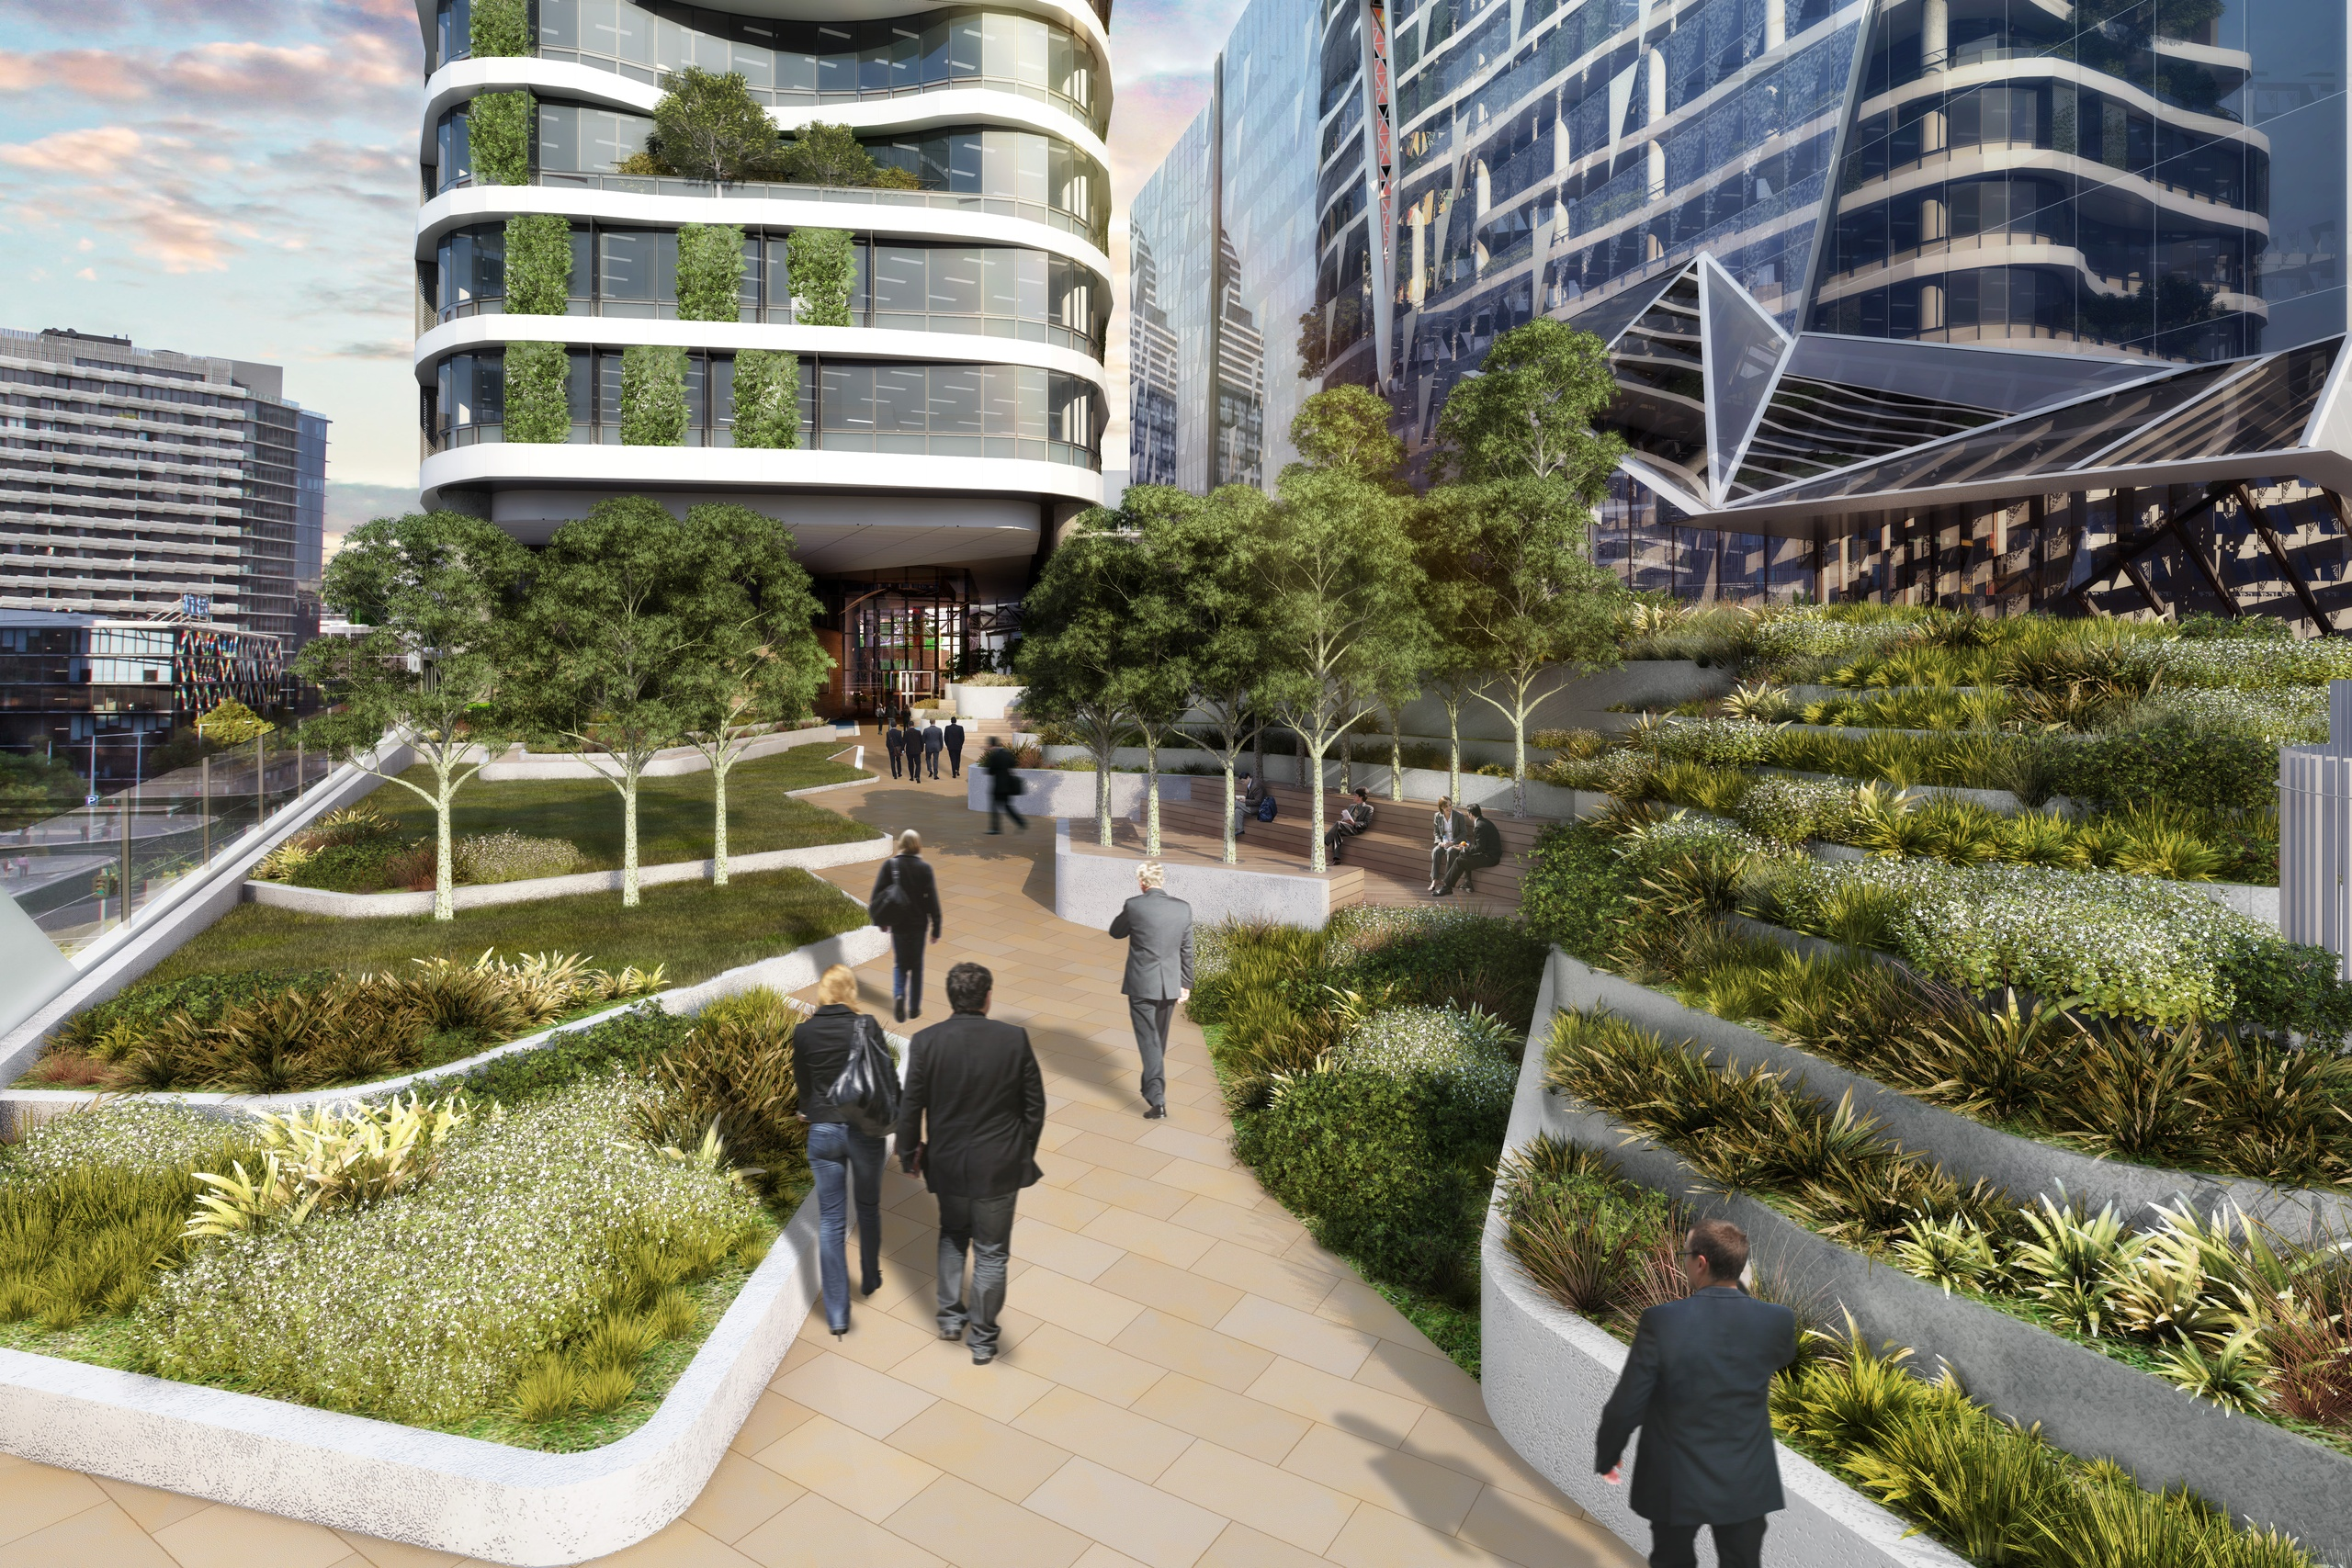 Sustainability in our built environment